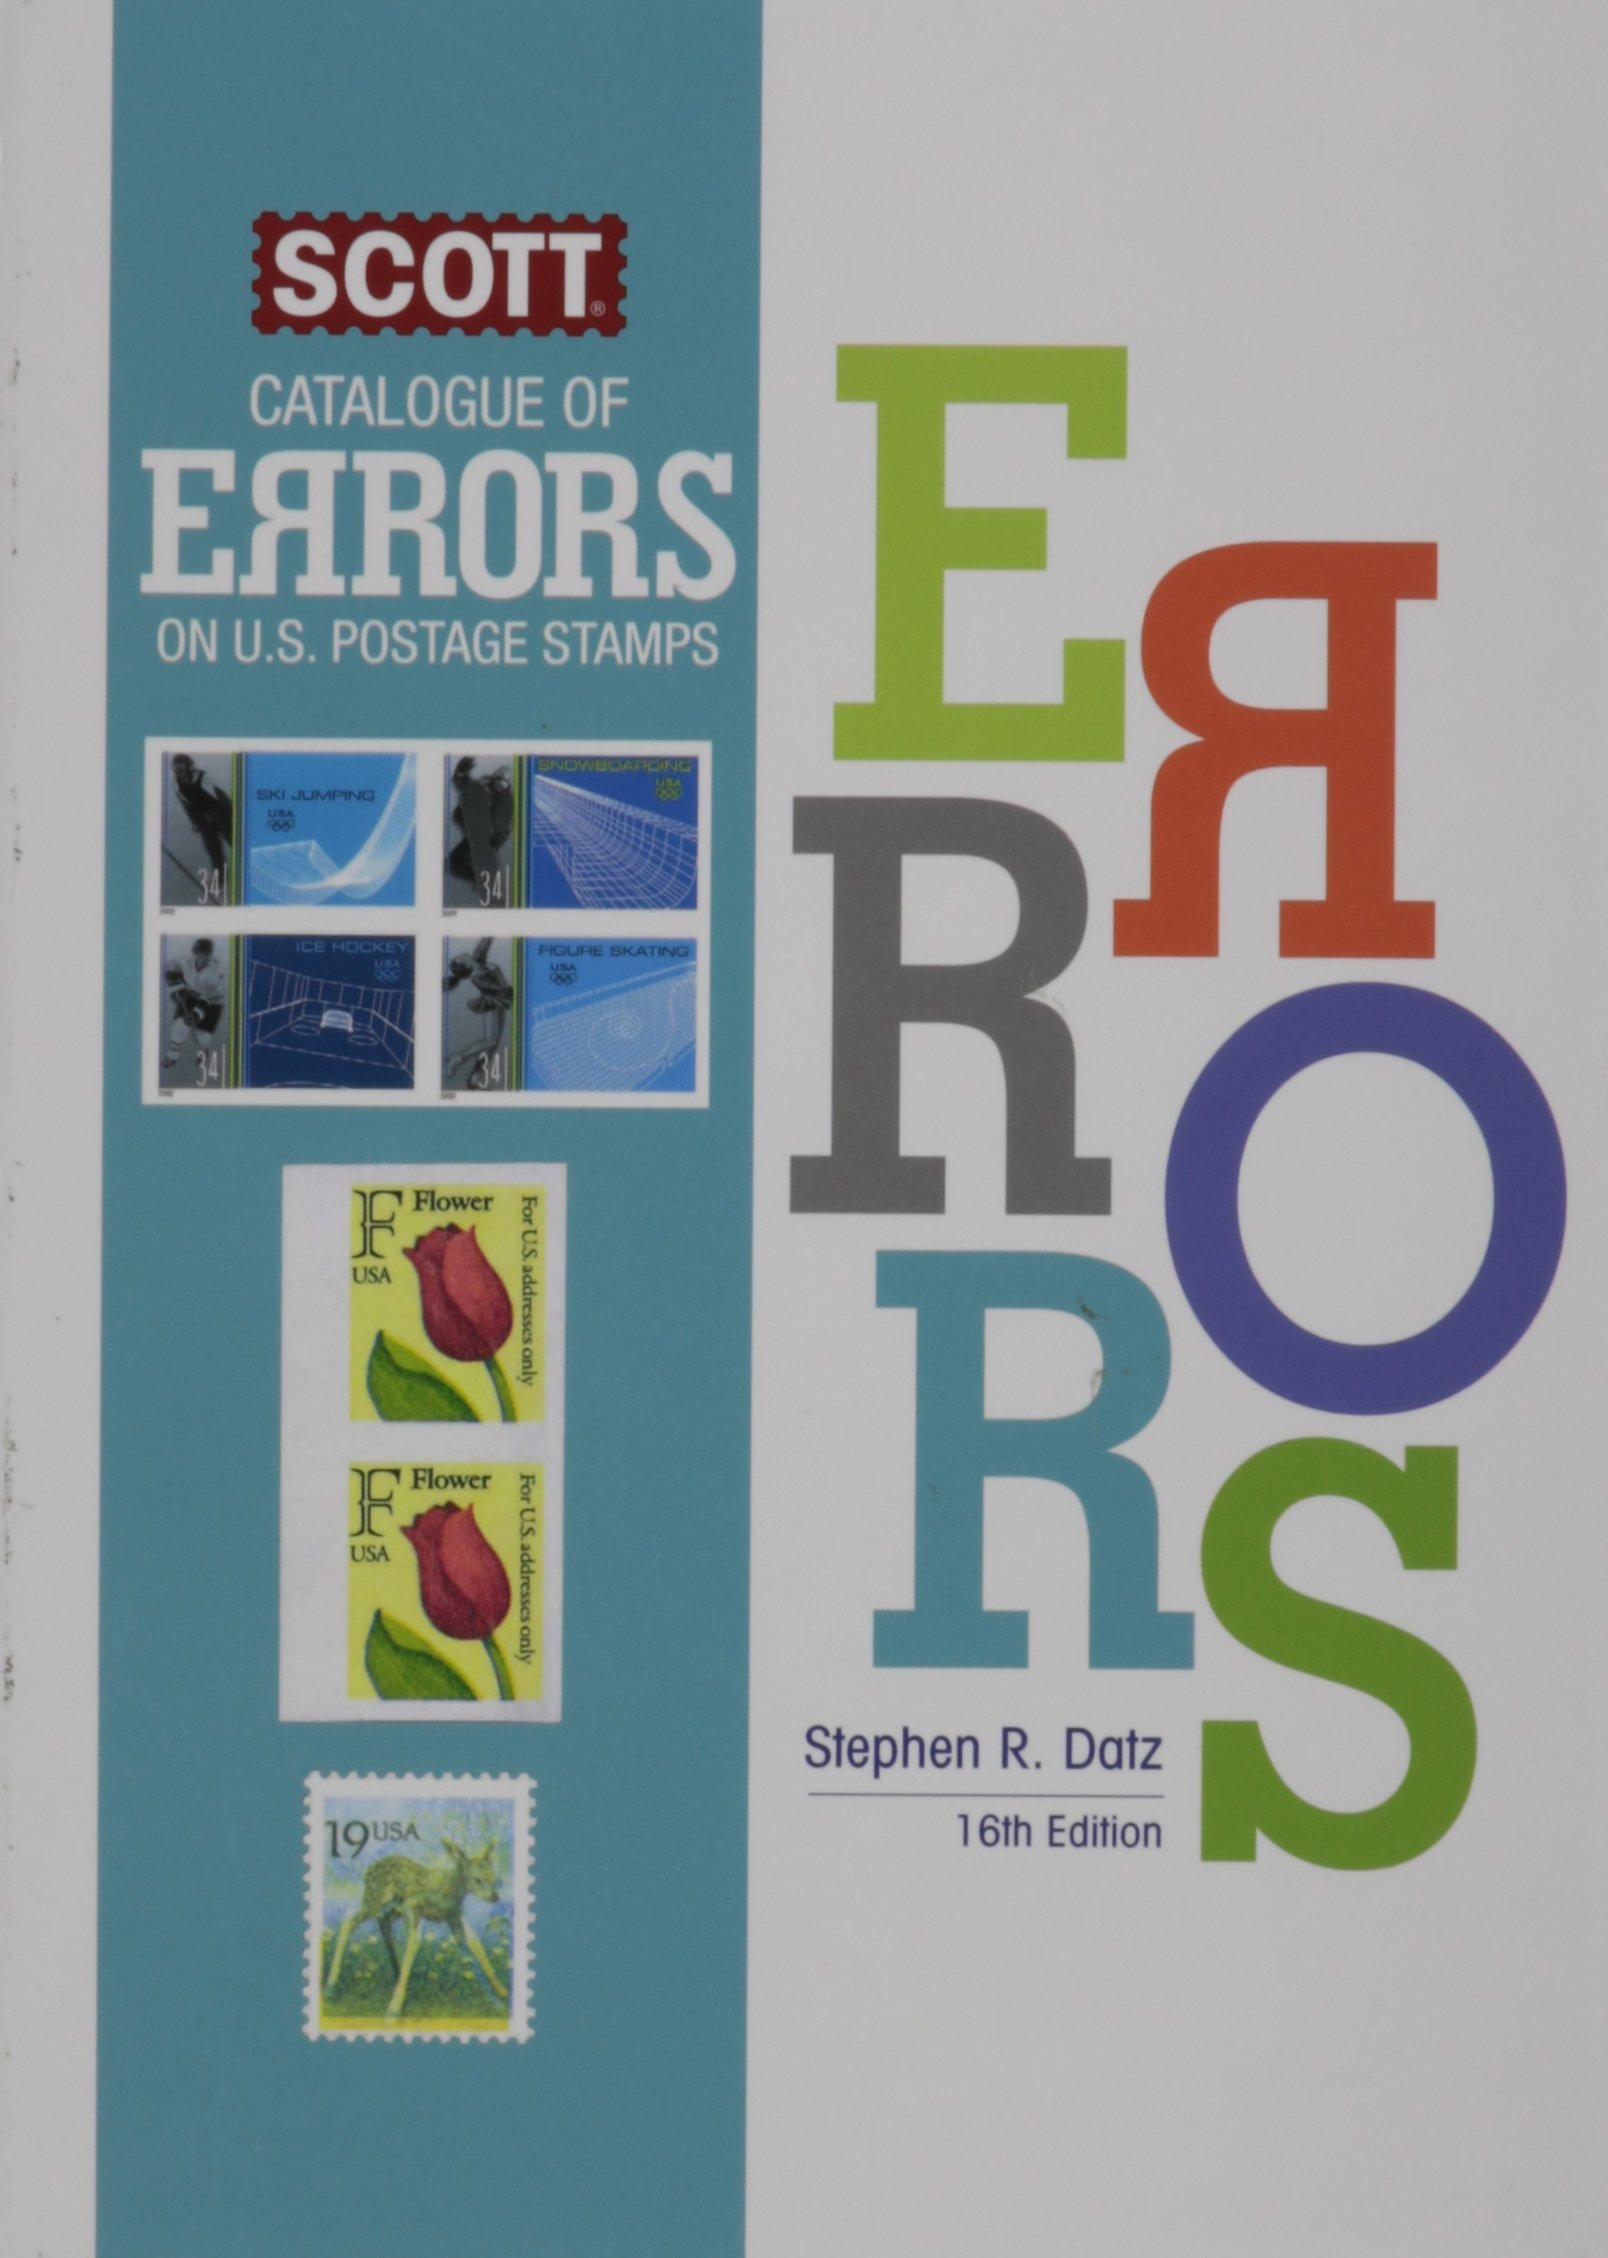 Scott Catalogue of Errors on US Postage Stamps